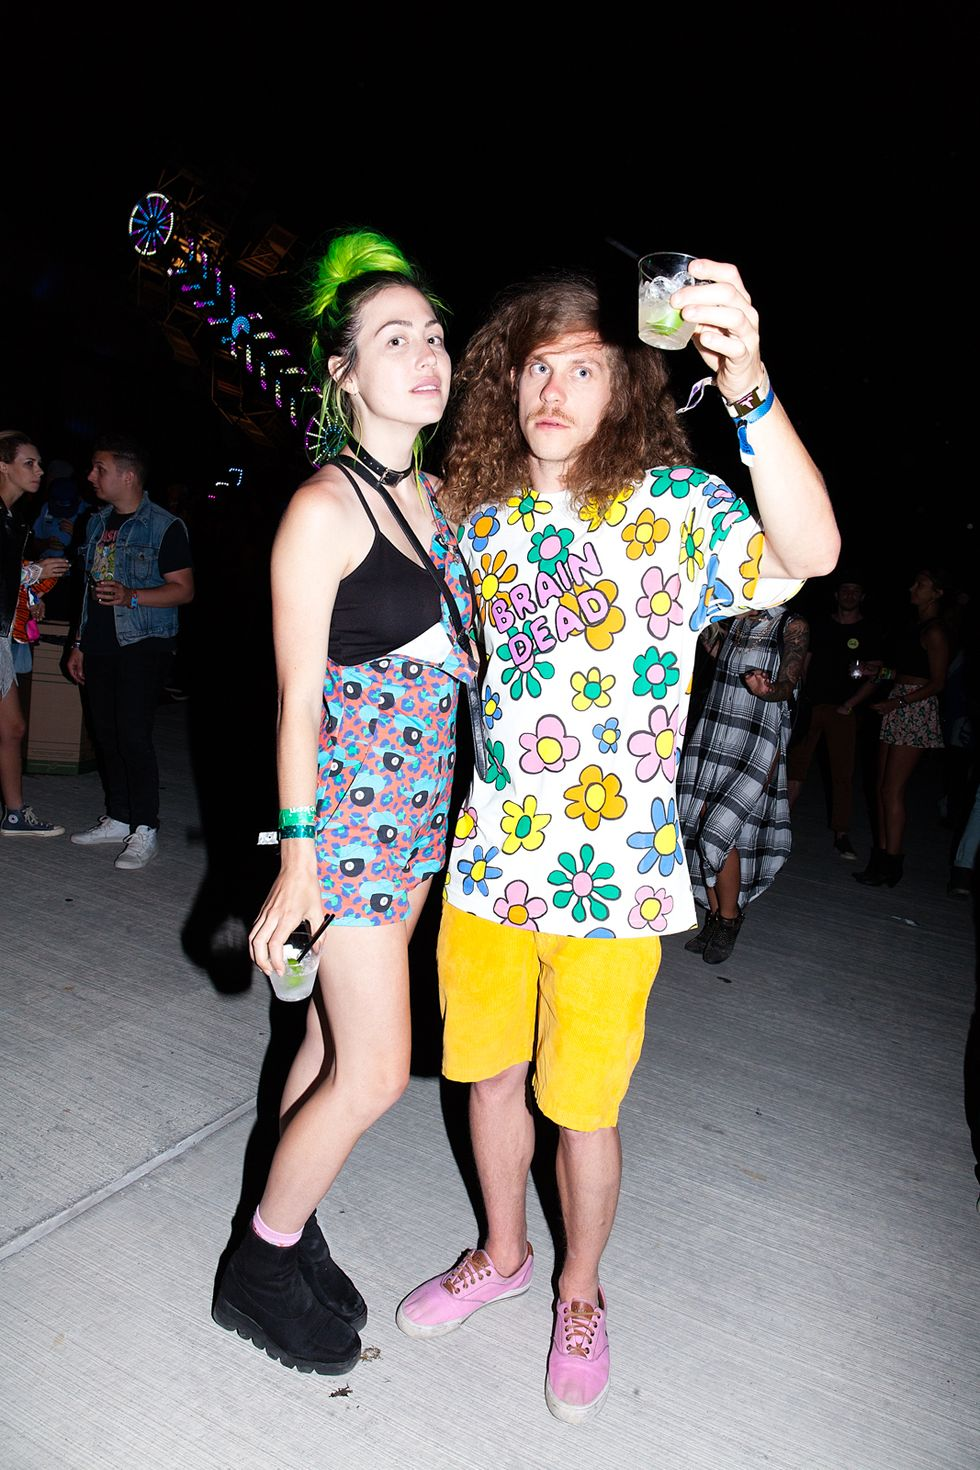 Scenes From Our Neon Carnival Party at Coachella